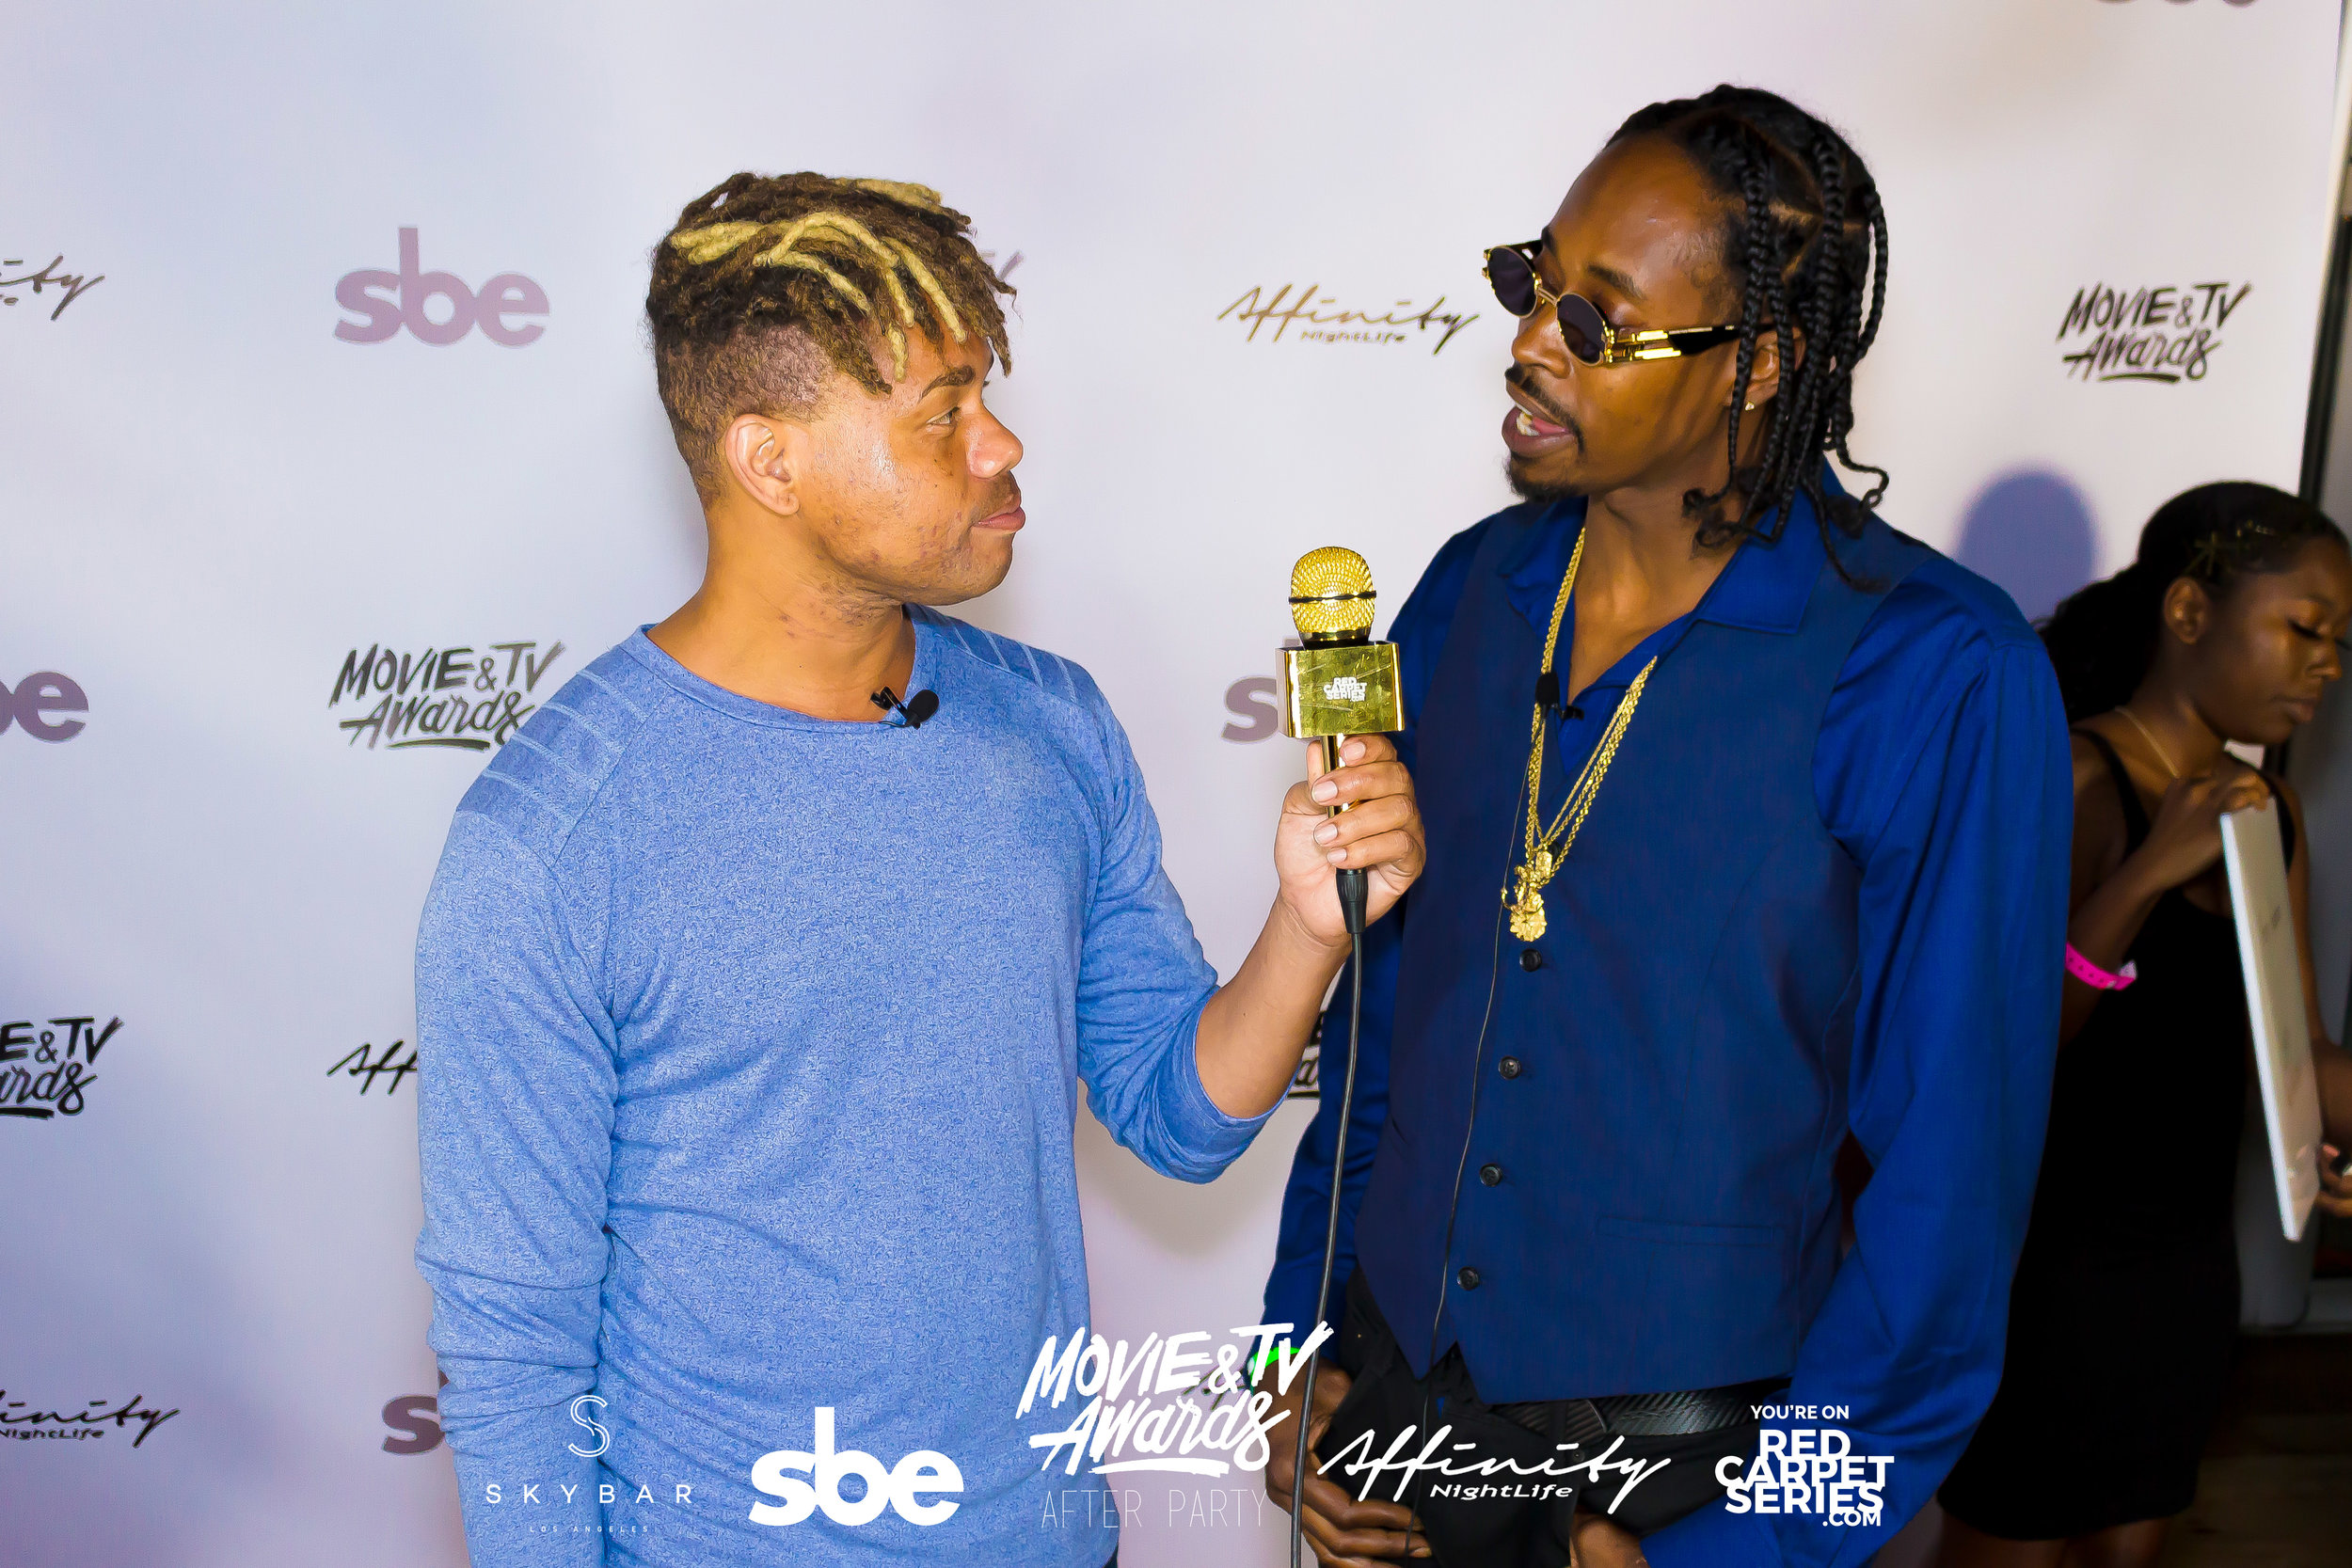 Affinity Nightlife MTV Movie & TV Awards After Party - Skybar at Mondrian - 06-15-19 - Vol. 1_106.jpg